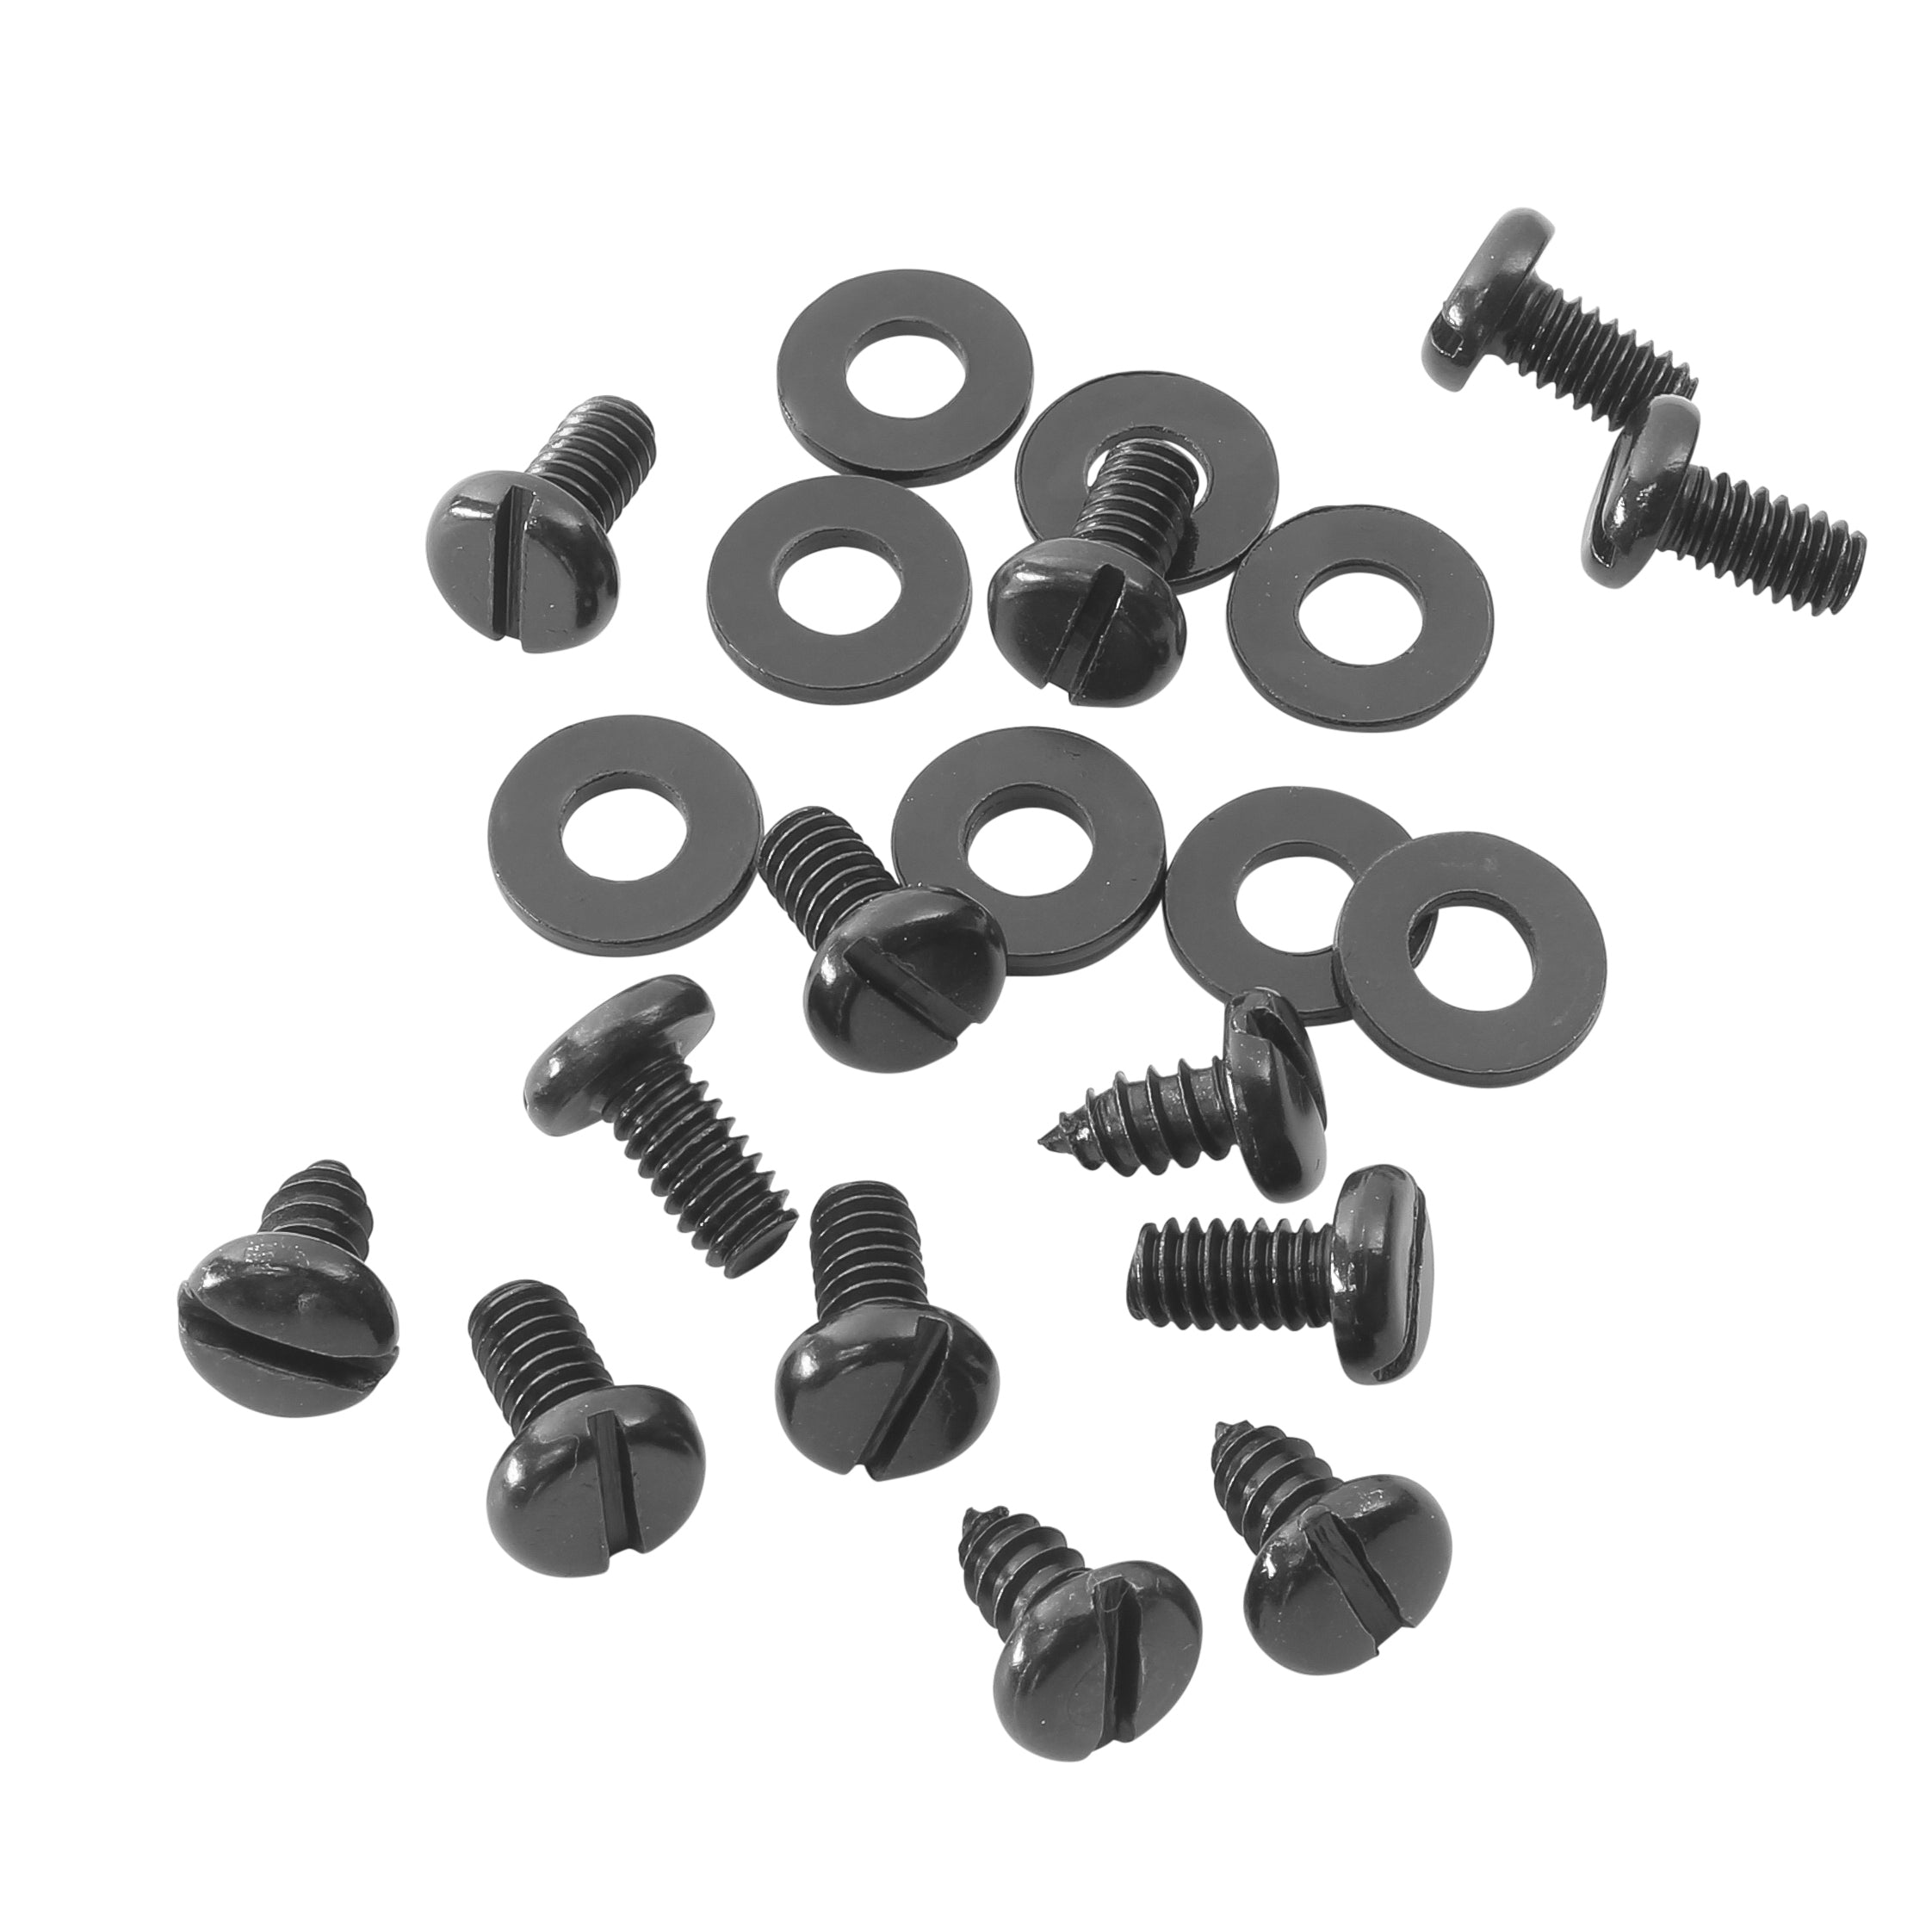 Transmission Metal Cover Screws and Washers • 1935-36 Ford